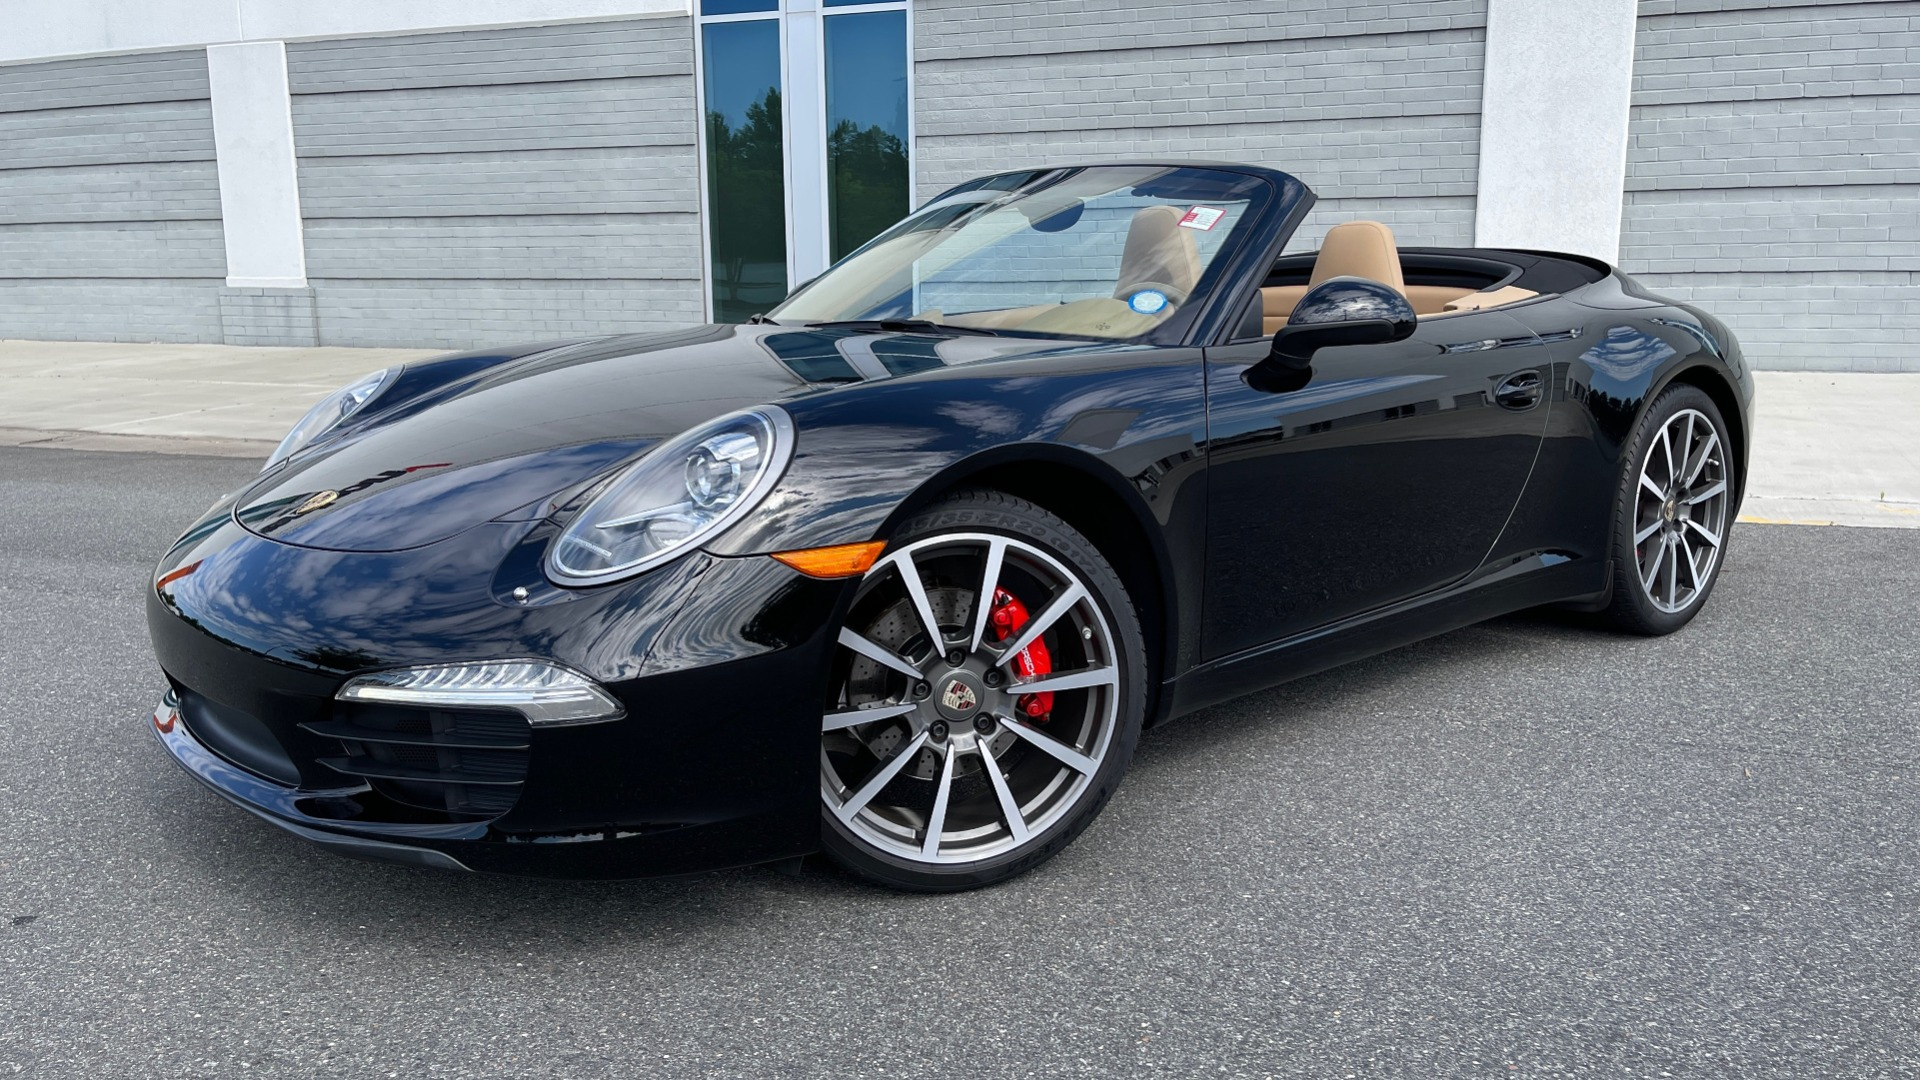 Used 2013 Porsche 911 CARRERA CABRIOLET / PDK / NAV / BOSE / HTD STS / PDLS for sale Sold at Formula Imports in Charlotte NC 28227 1